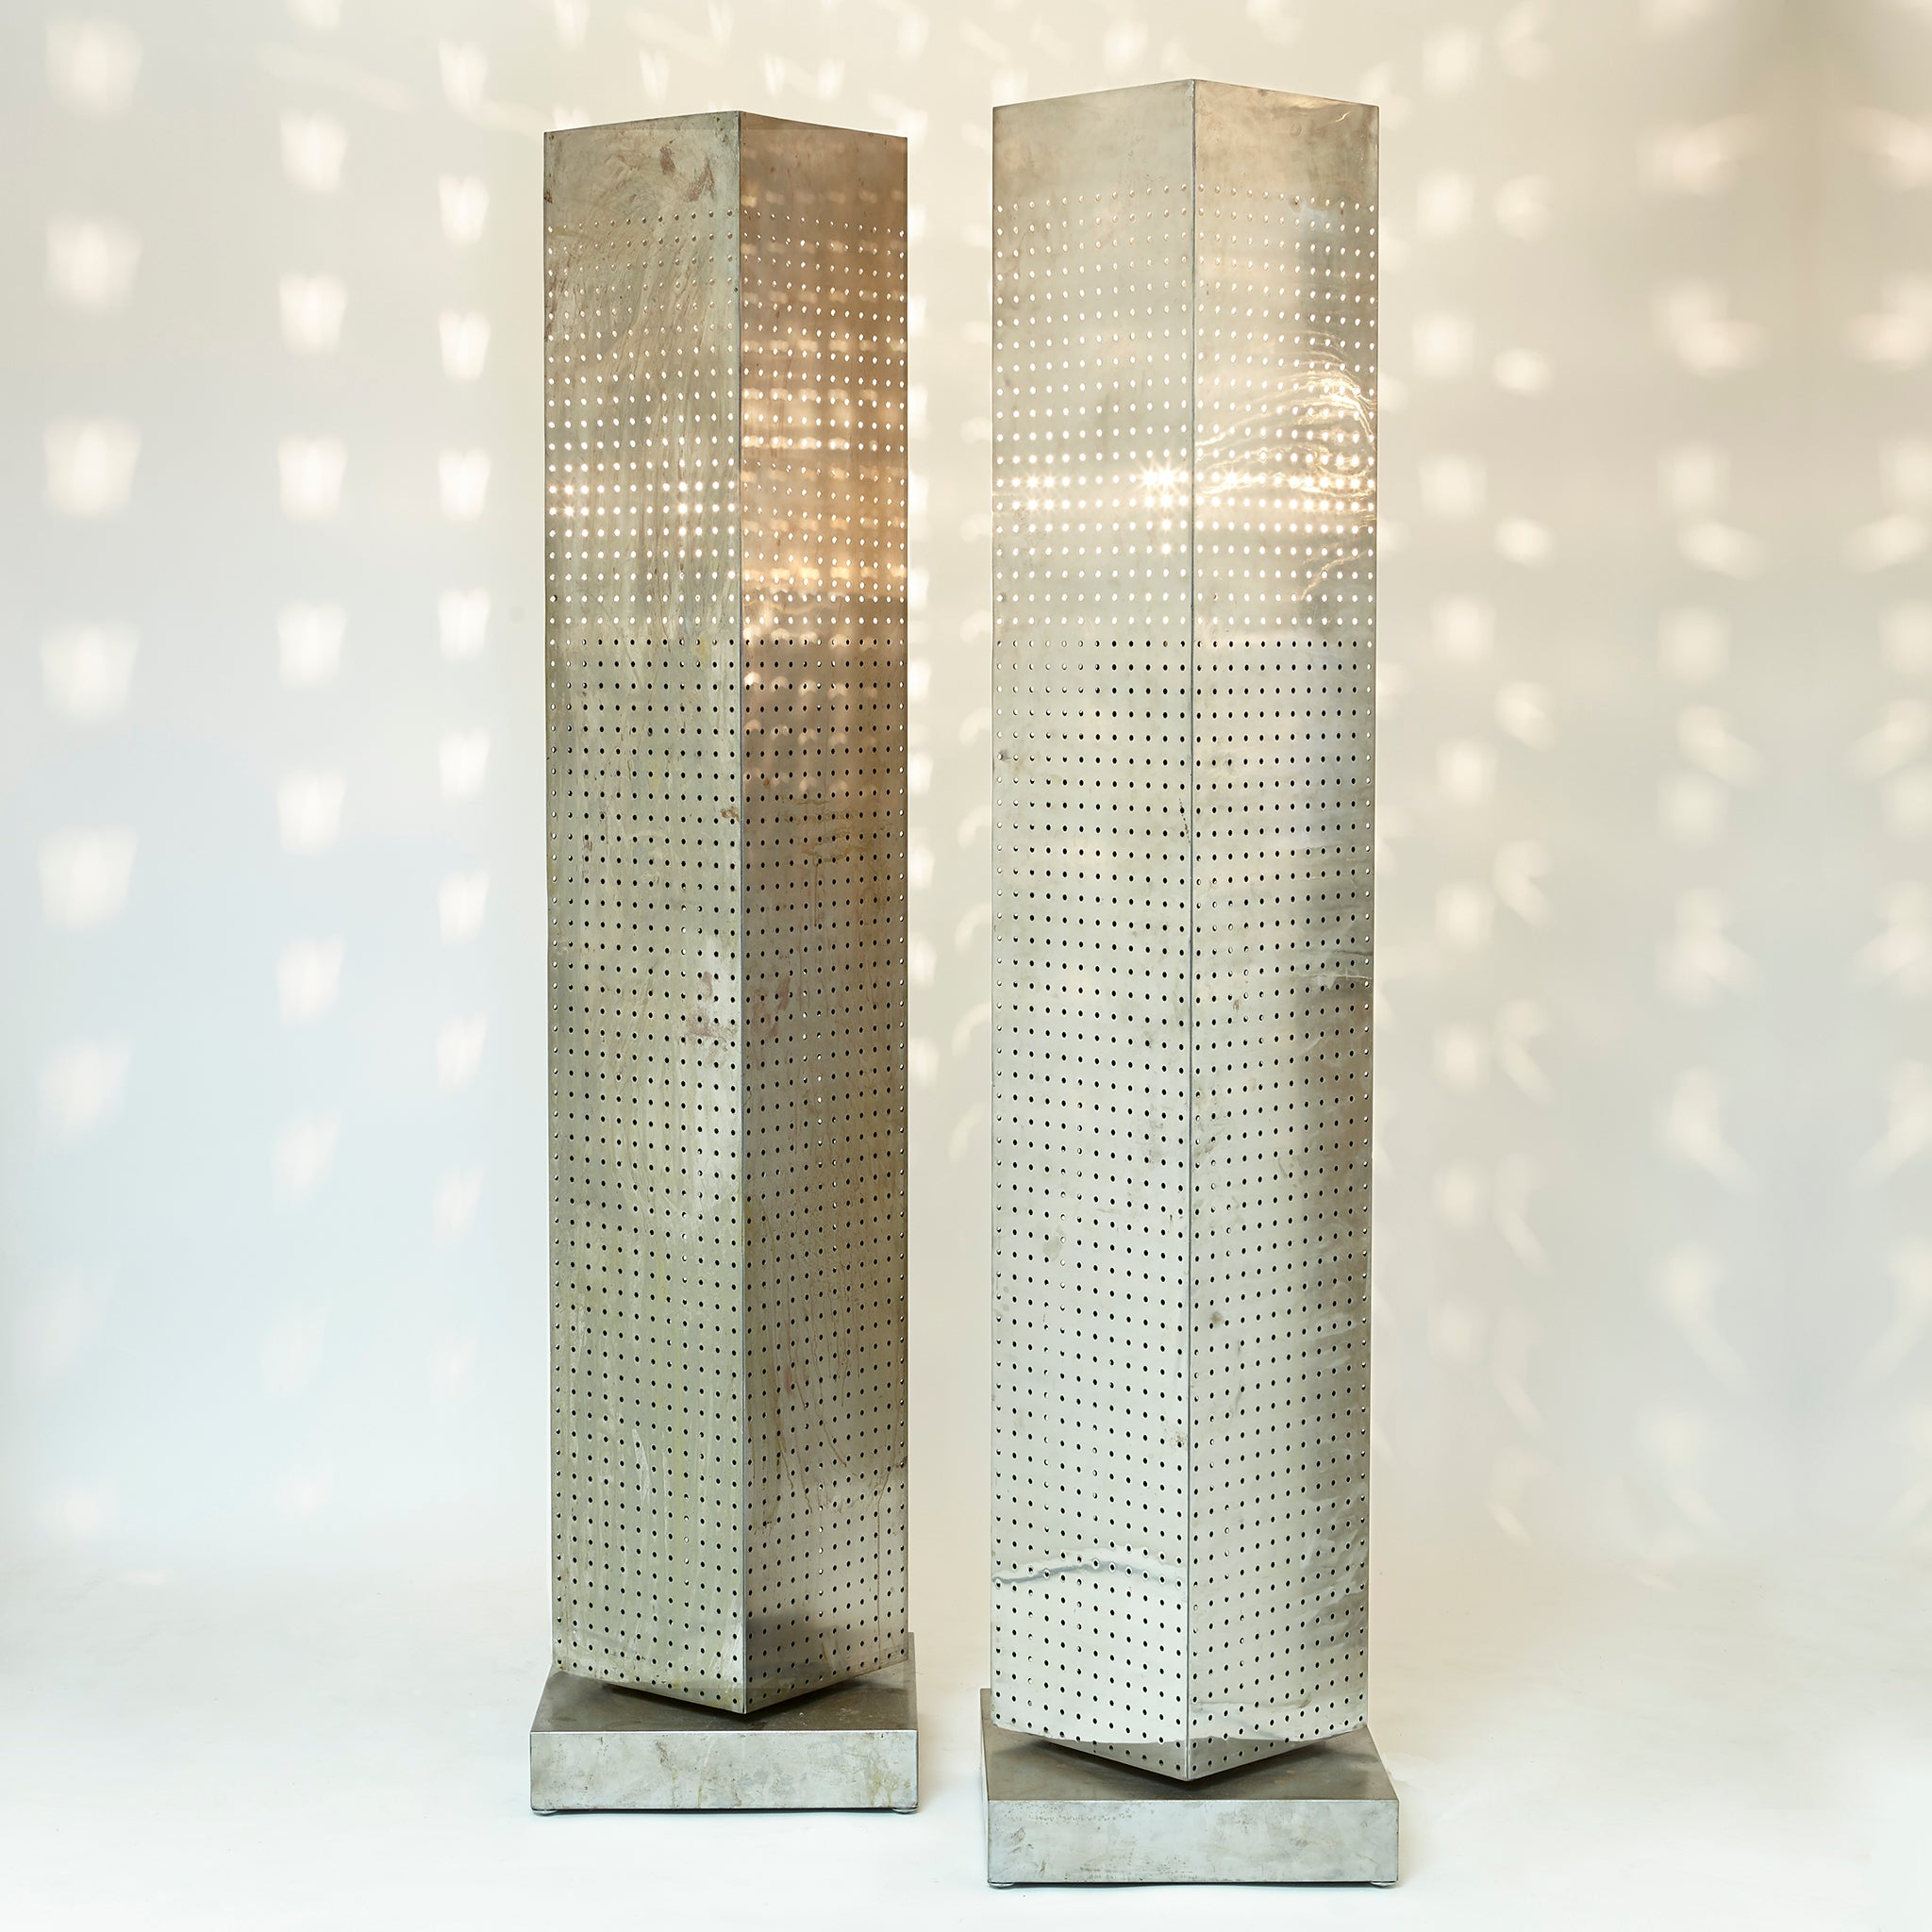 Impressive pair of huge 190 cm brutalist revolving floor lamps .